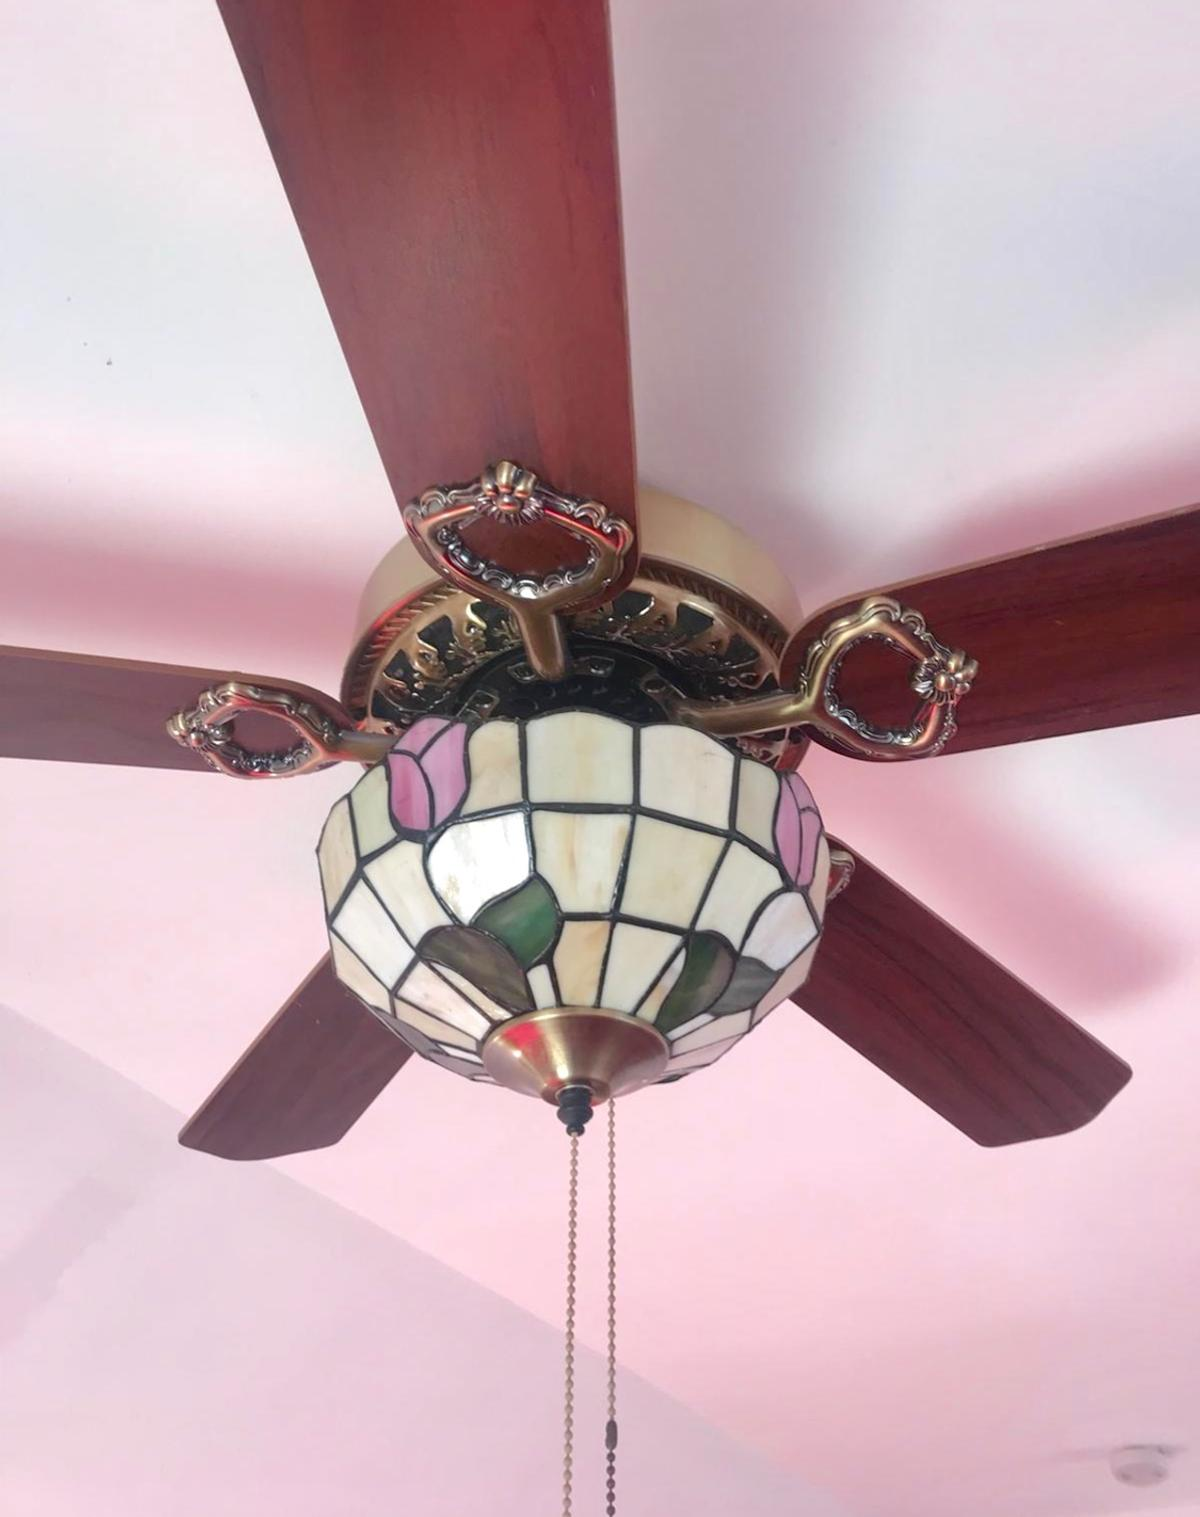 Encon Ceiling Fan Light Tiffany Style In Ig10 Forest For 50 00 For Sale Shpock